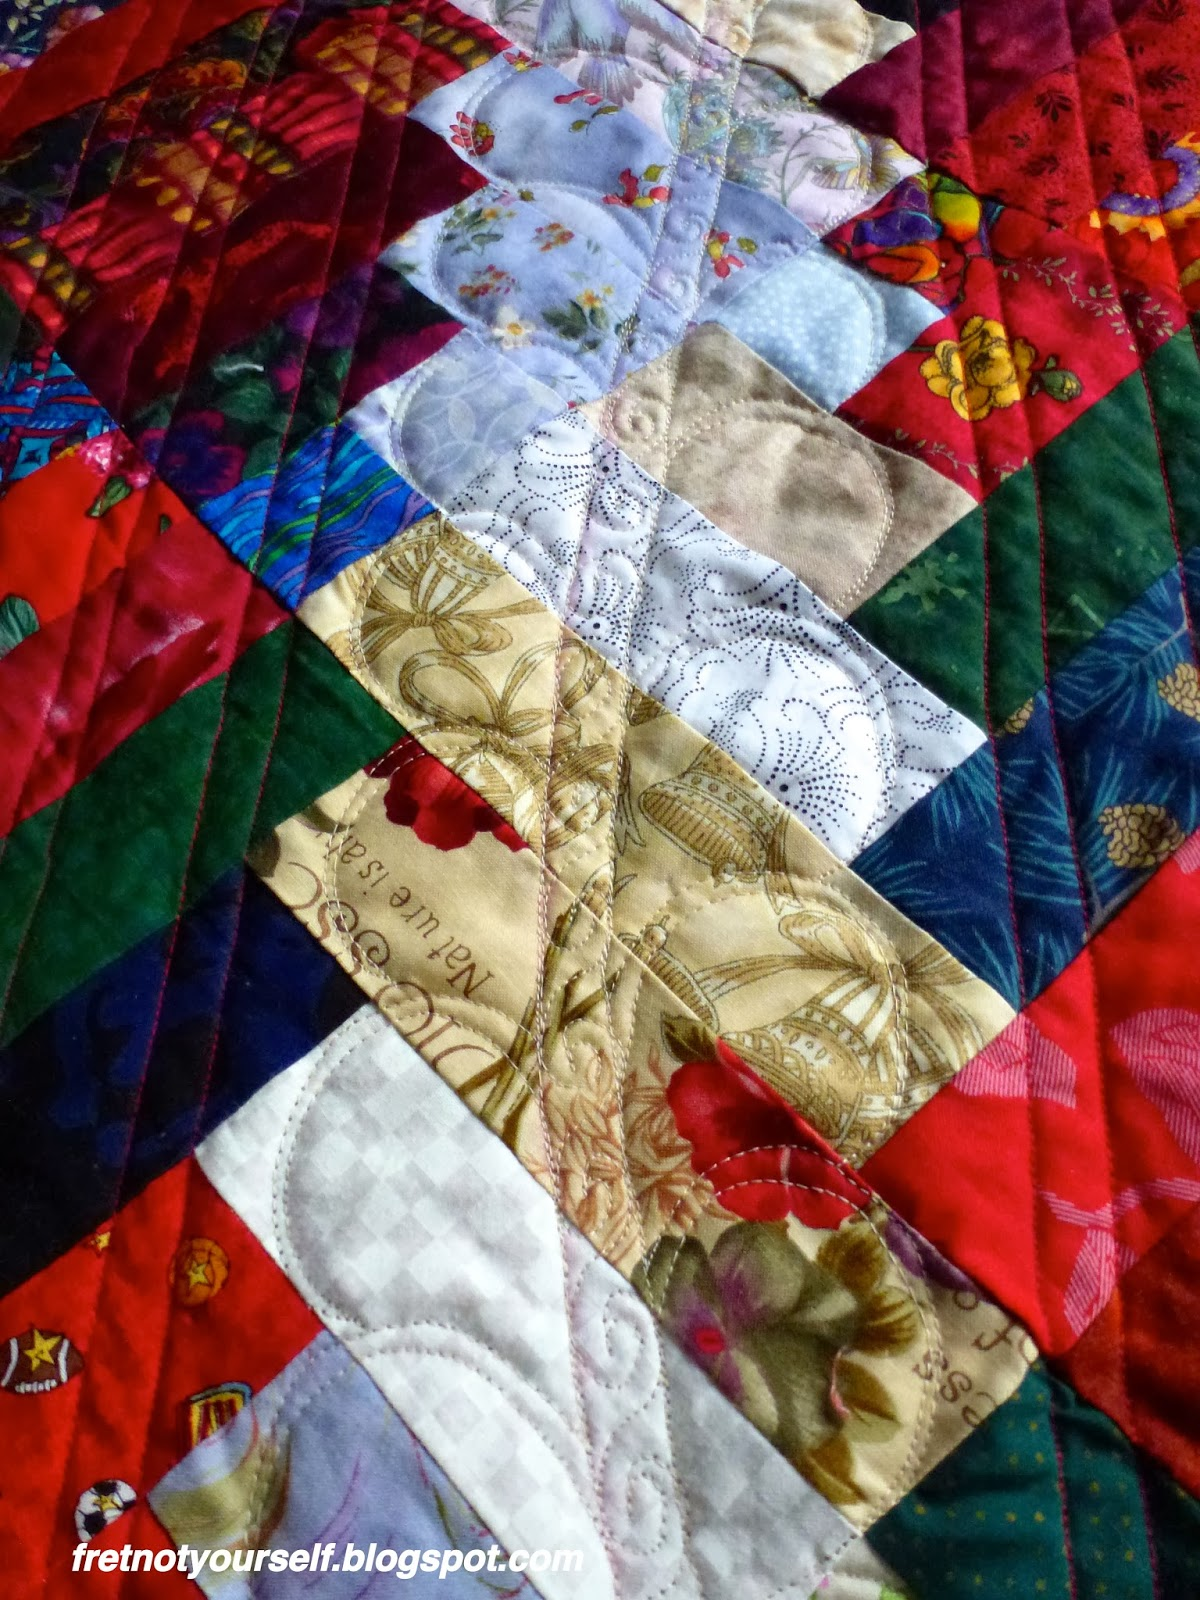 The quilting is a simplified feather of gentle c-shapes surrounding a stem filled with spirals.